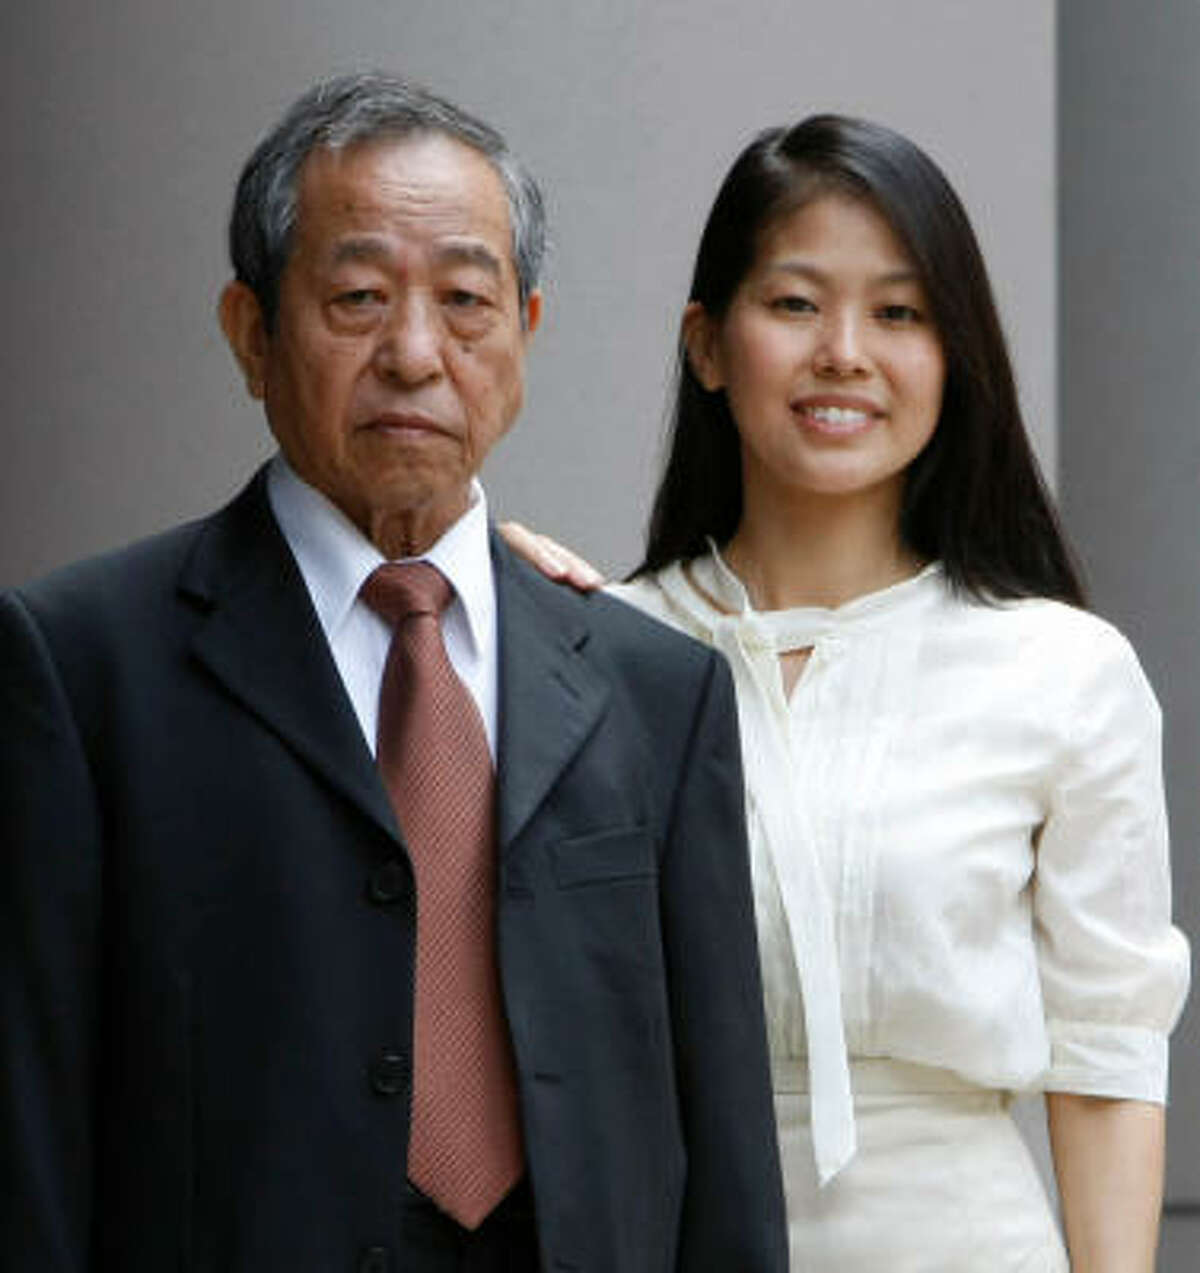 Jiro Takashima, 75, and his daughter Amy Sung, 35, of Houston-based High Island Health, appeared in federal court on Friday.